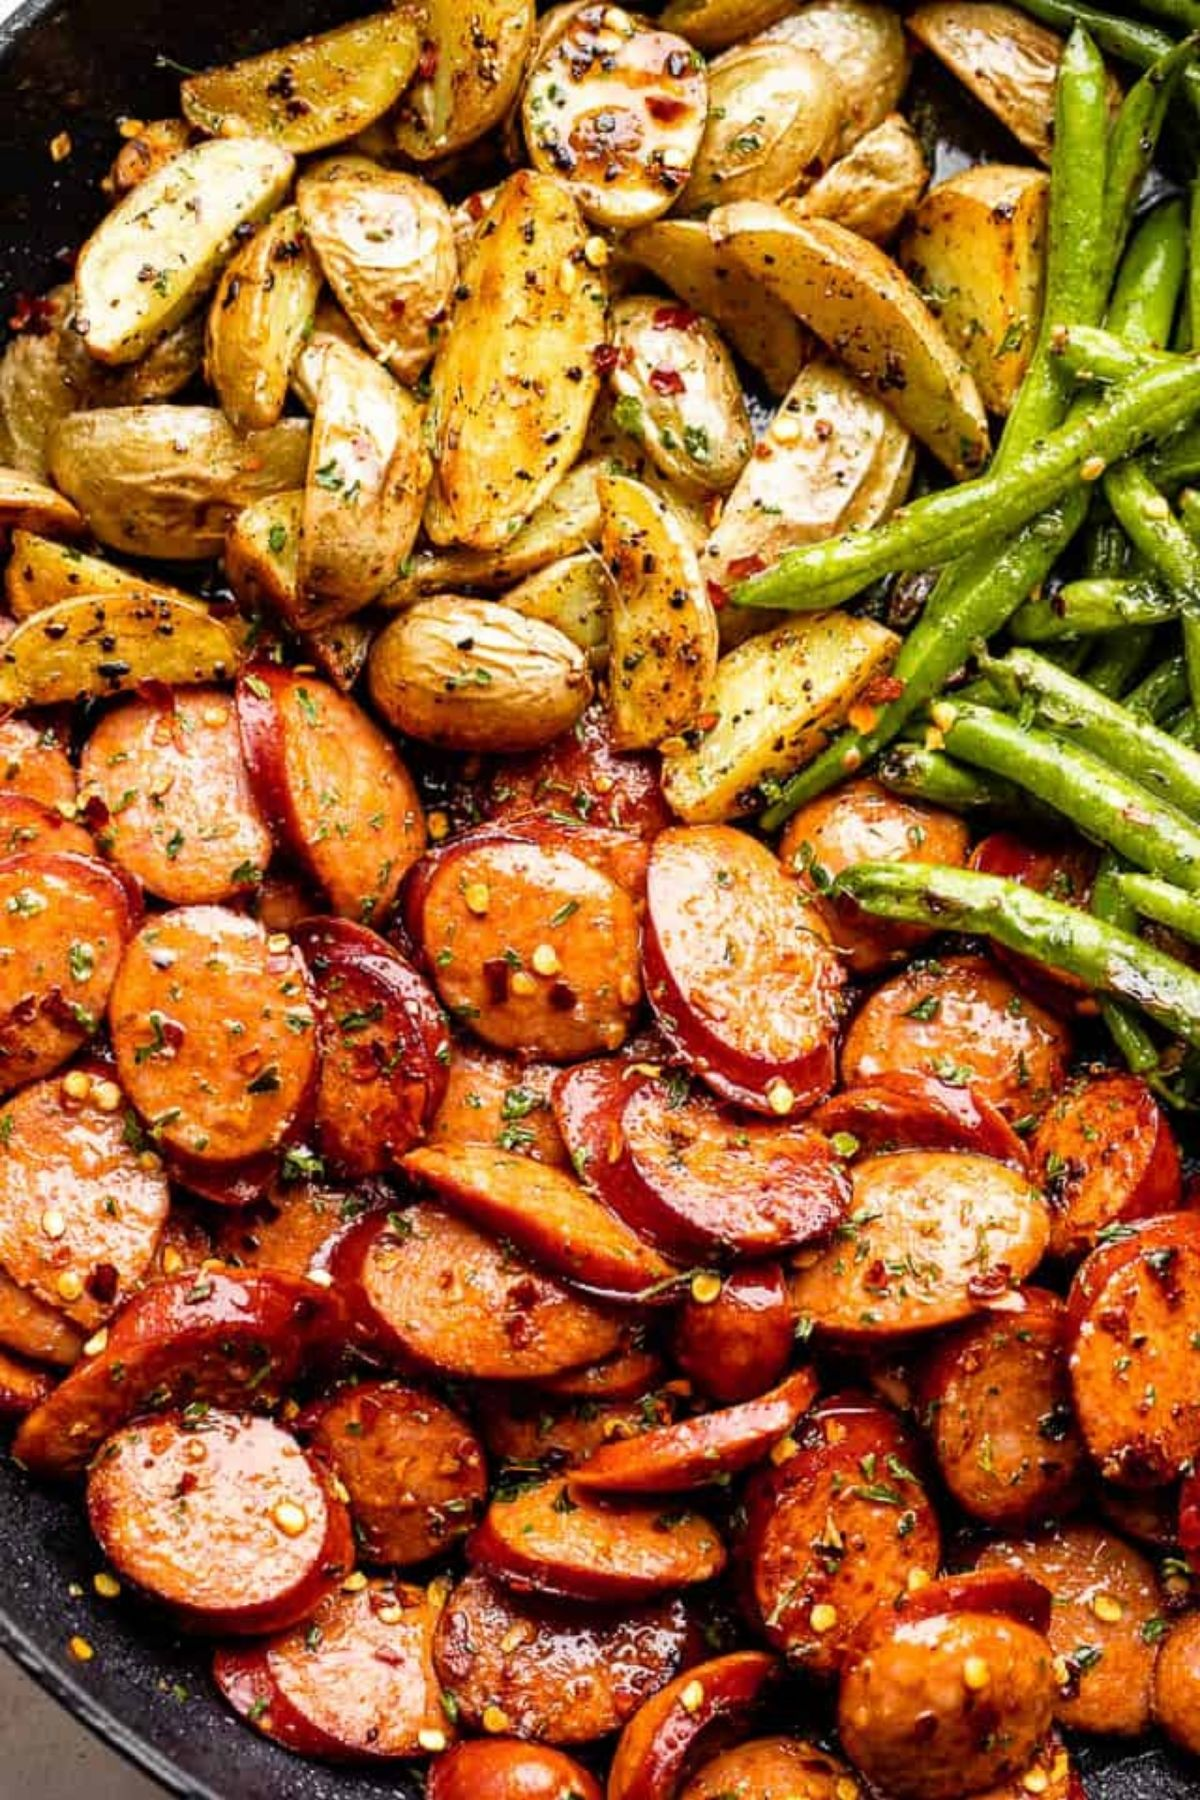 Sausage potatoes and green beans seasoned in skillet